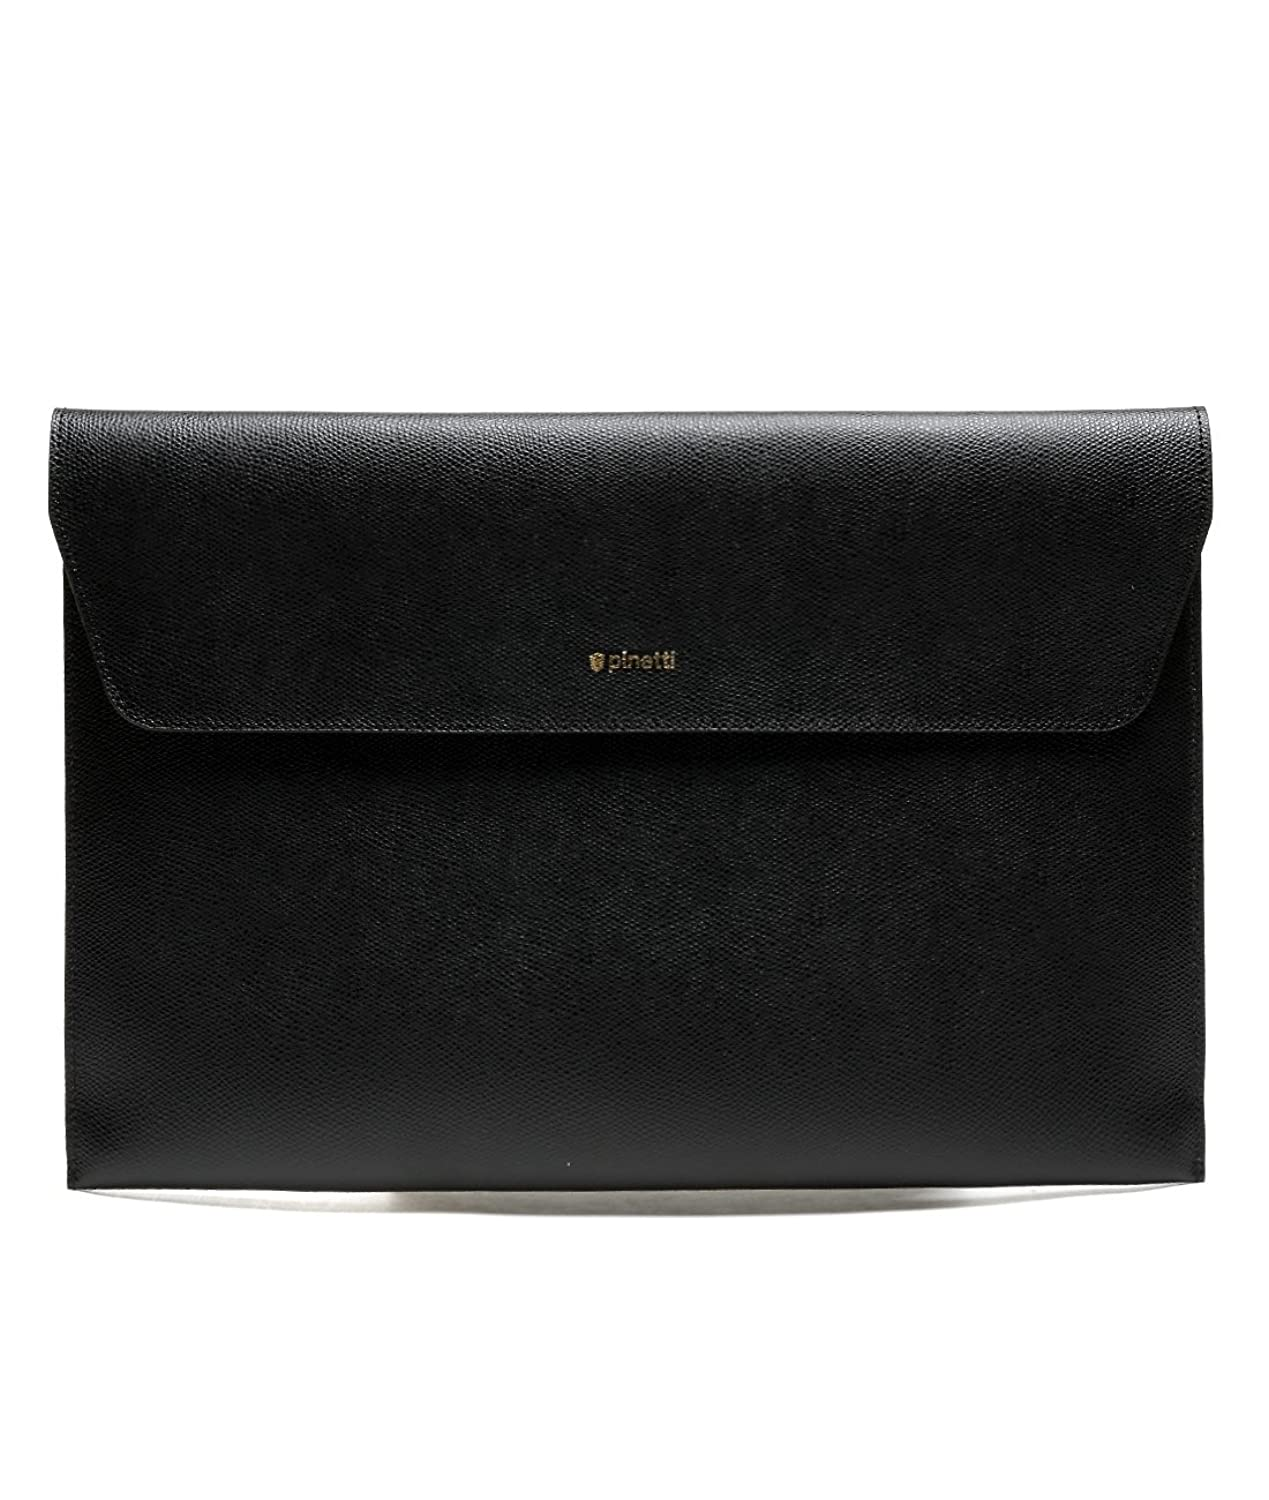 Pinetti Men's Real Leather Velcro Flap Clutch